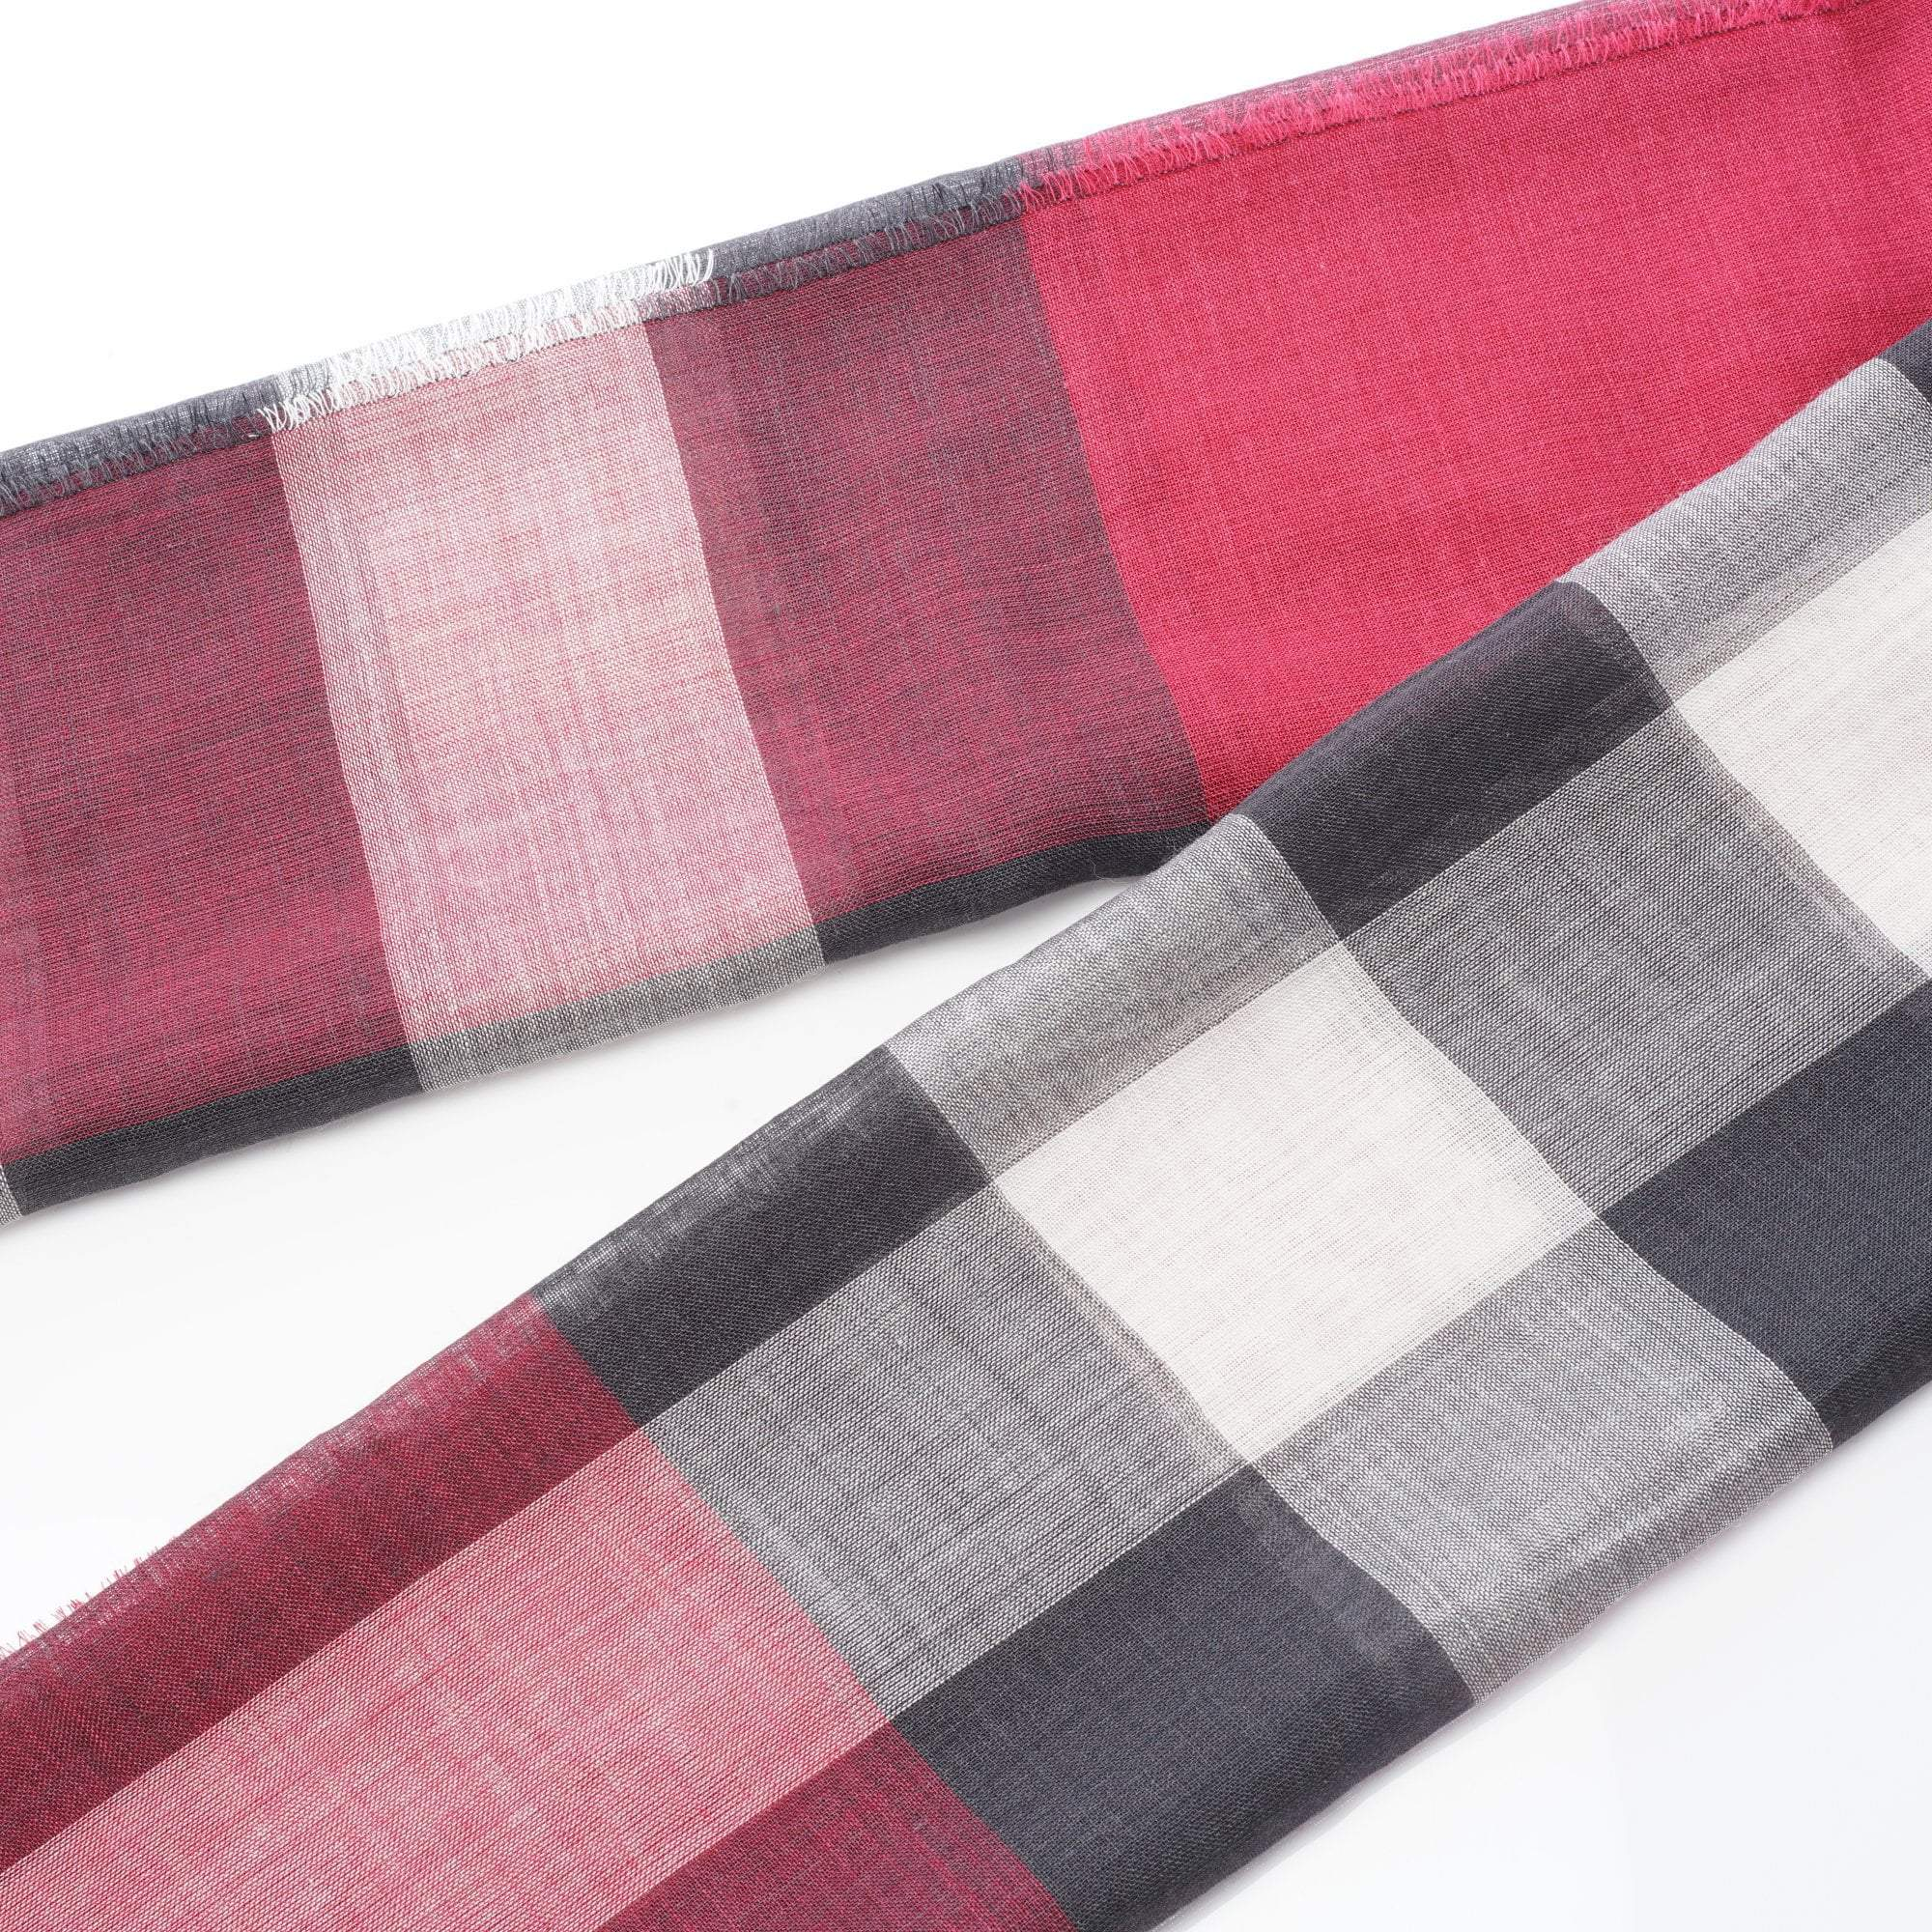 Burberry Giant Check Wool and Silk Pink Scarf